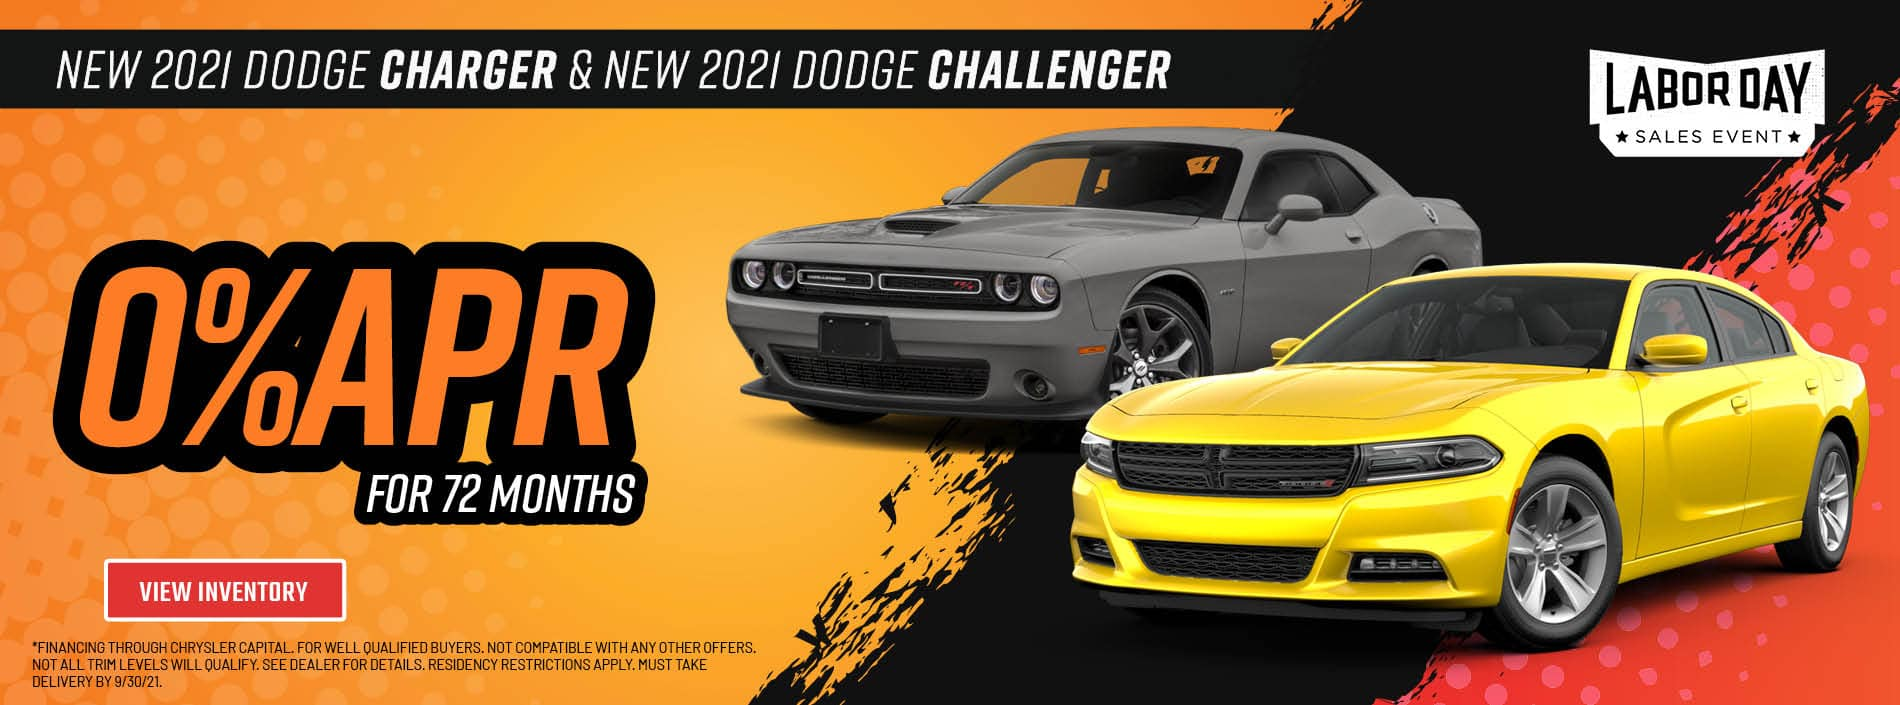 New 2021 Dodge Charger and 2021 Dodge Challenger 0% APR for 72 months